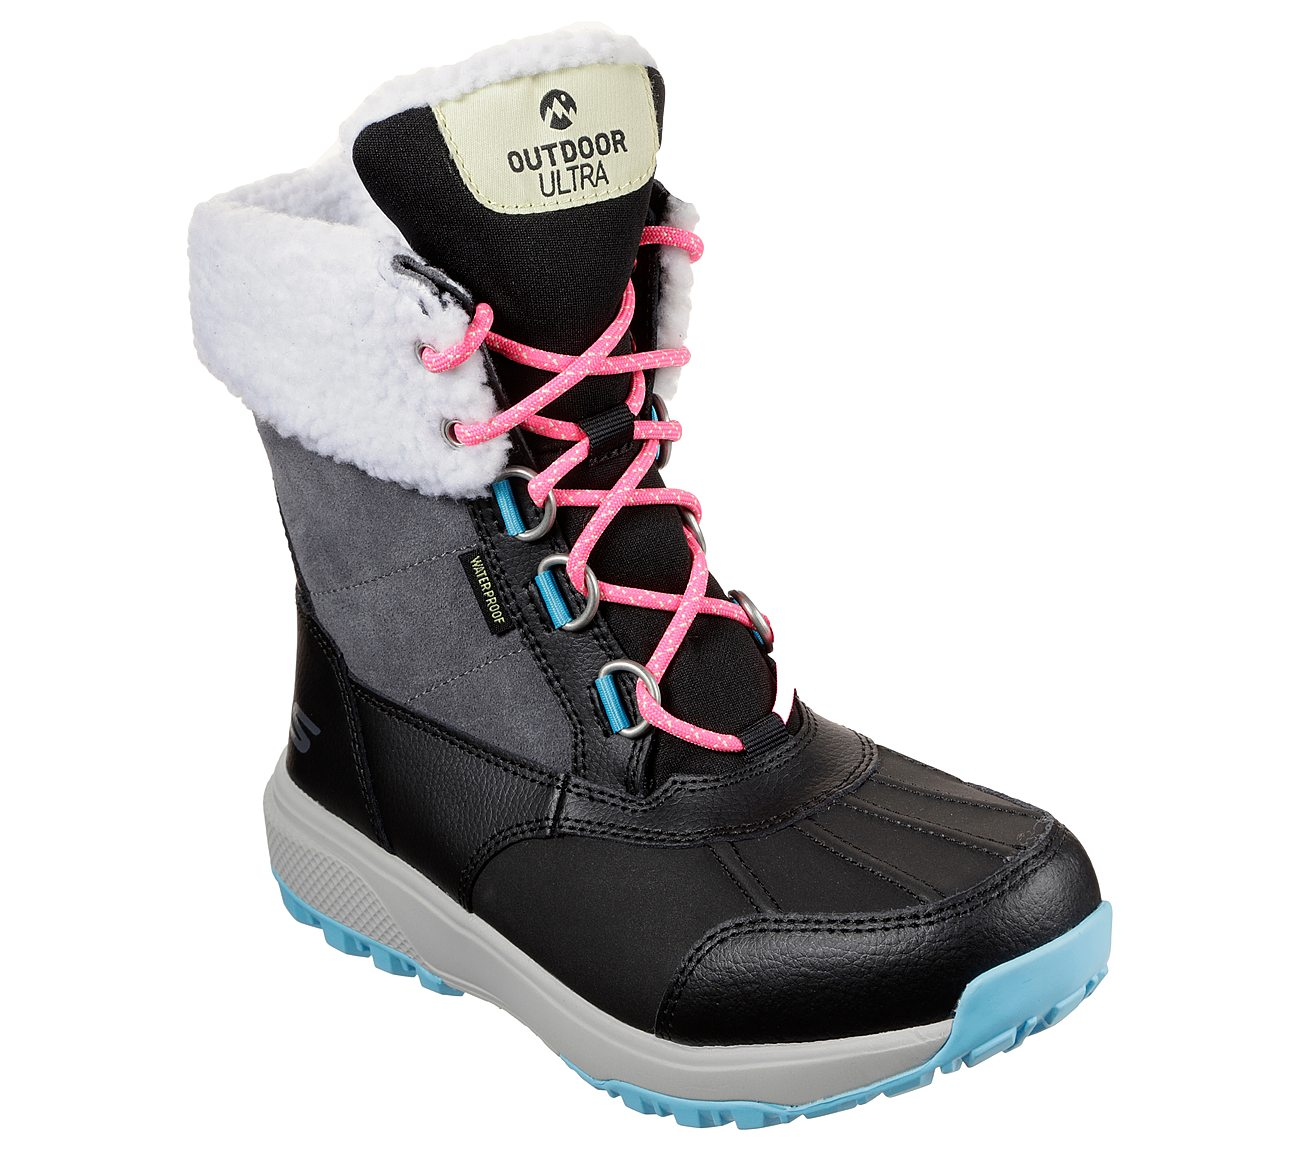 Skechers On the GO Outdoors Ultra Snow Capped